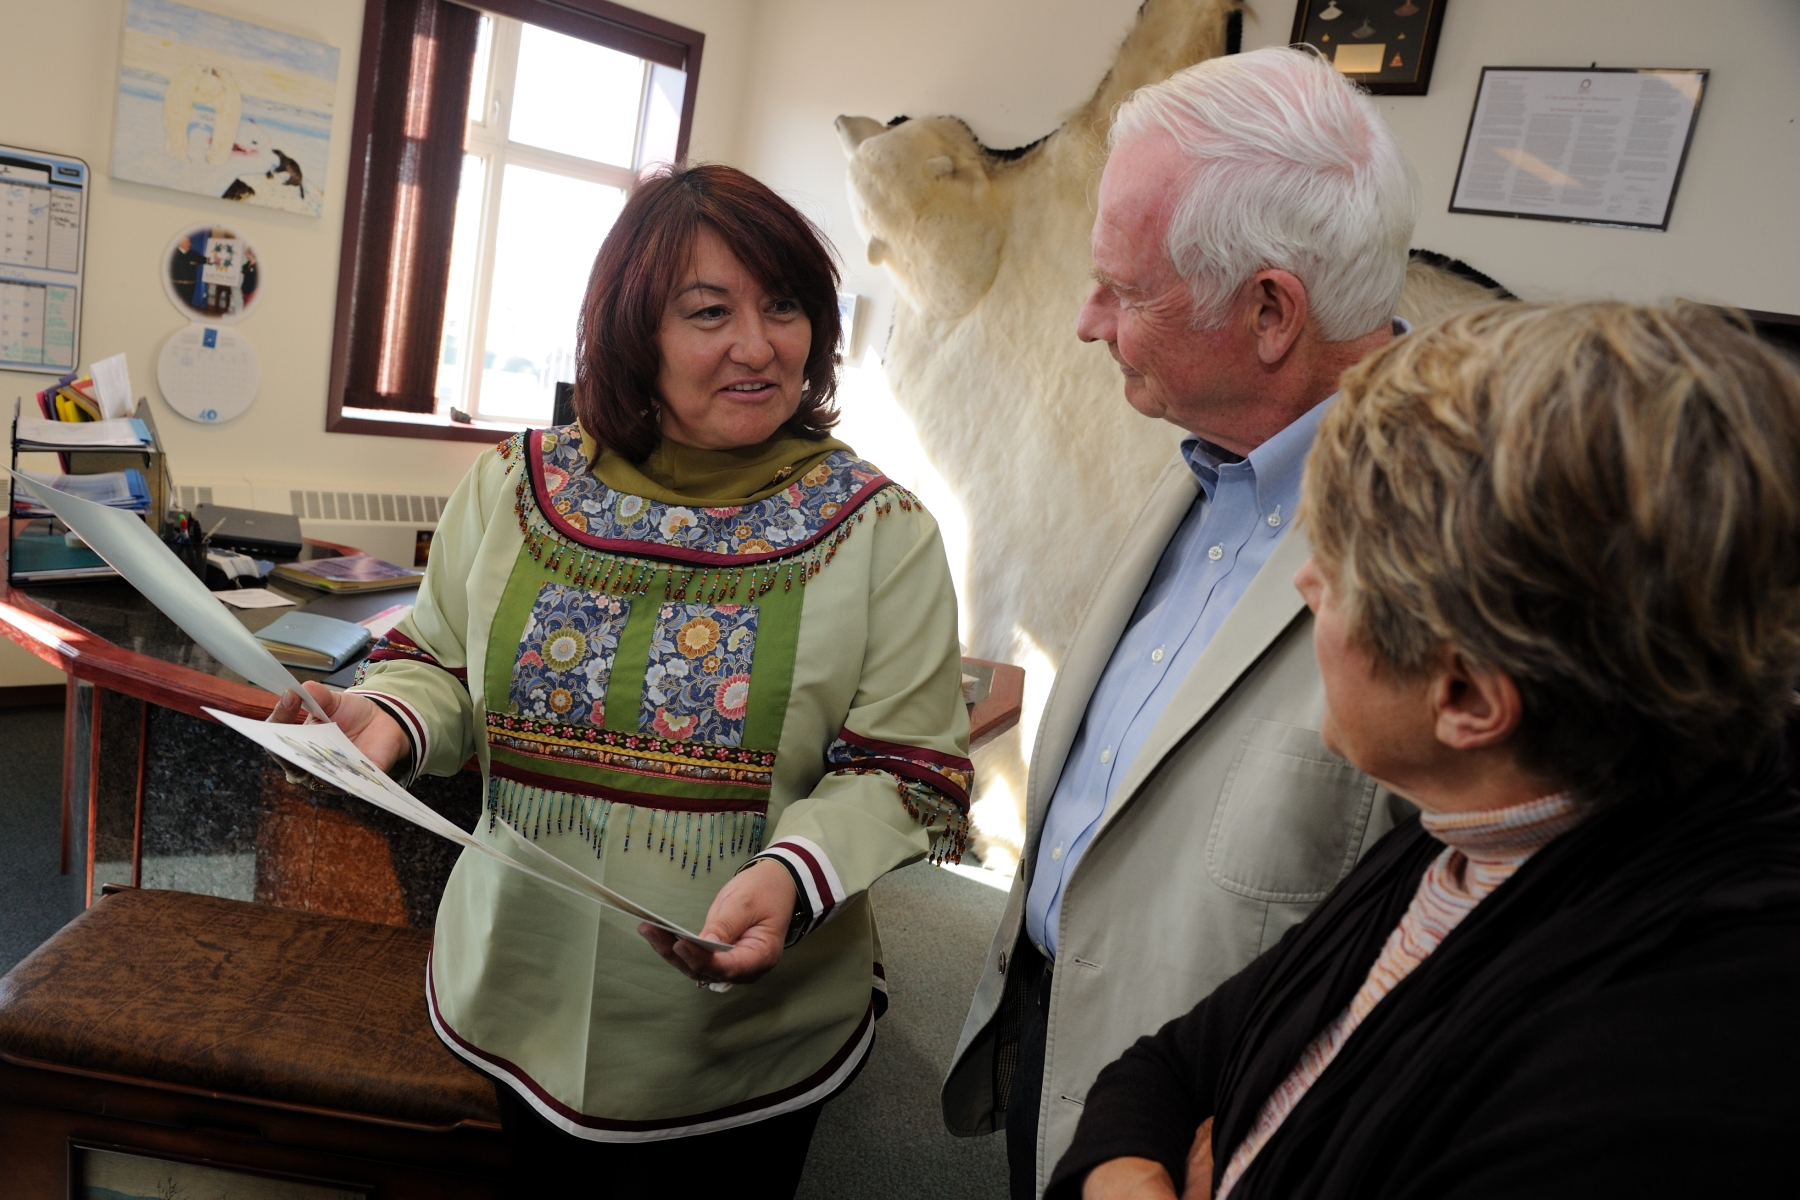 Their Excellencies also met with Ms. Cathy Towtongie, President of Nunavut Tunngavik Inc. (NTI) where they learned about the role of NTI in preserving the rights of the Inuit. Ms. Towtongie also showed Their Excellencies work done by local artists.